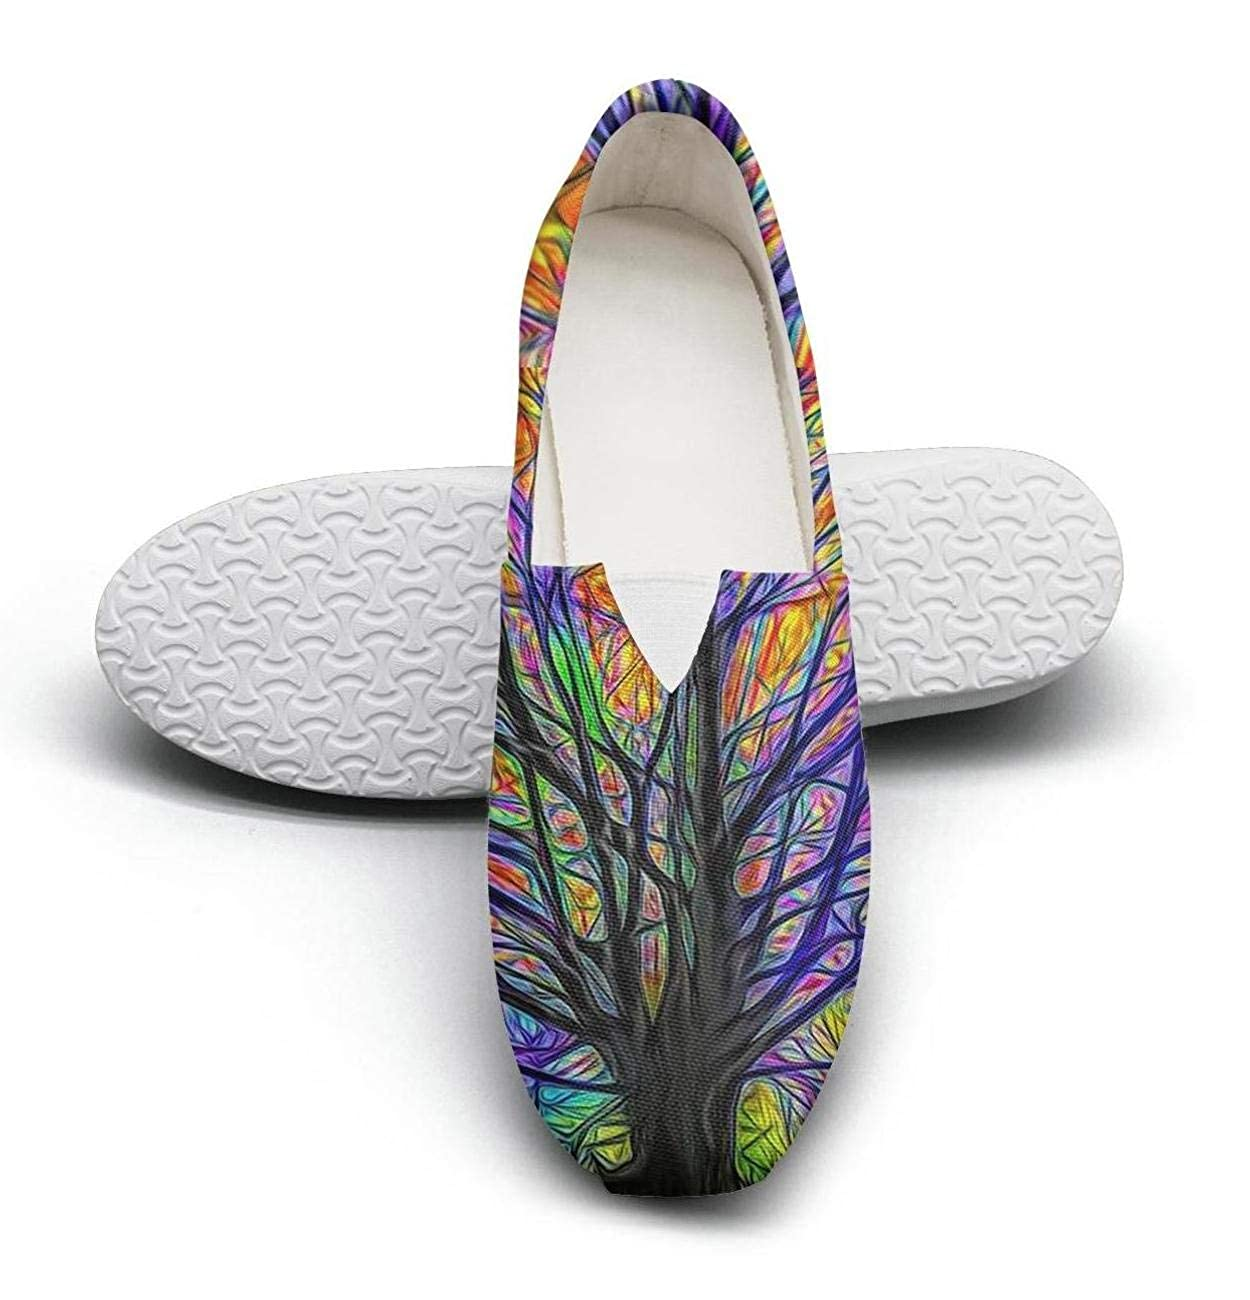 nkfbx Colorful Tree Casual Flat Trainers for Women Exercise